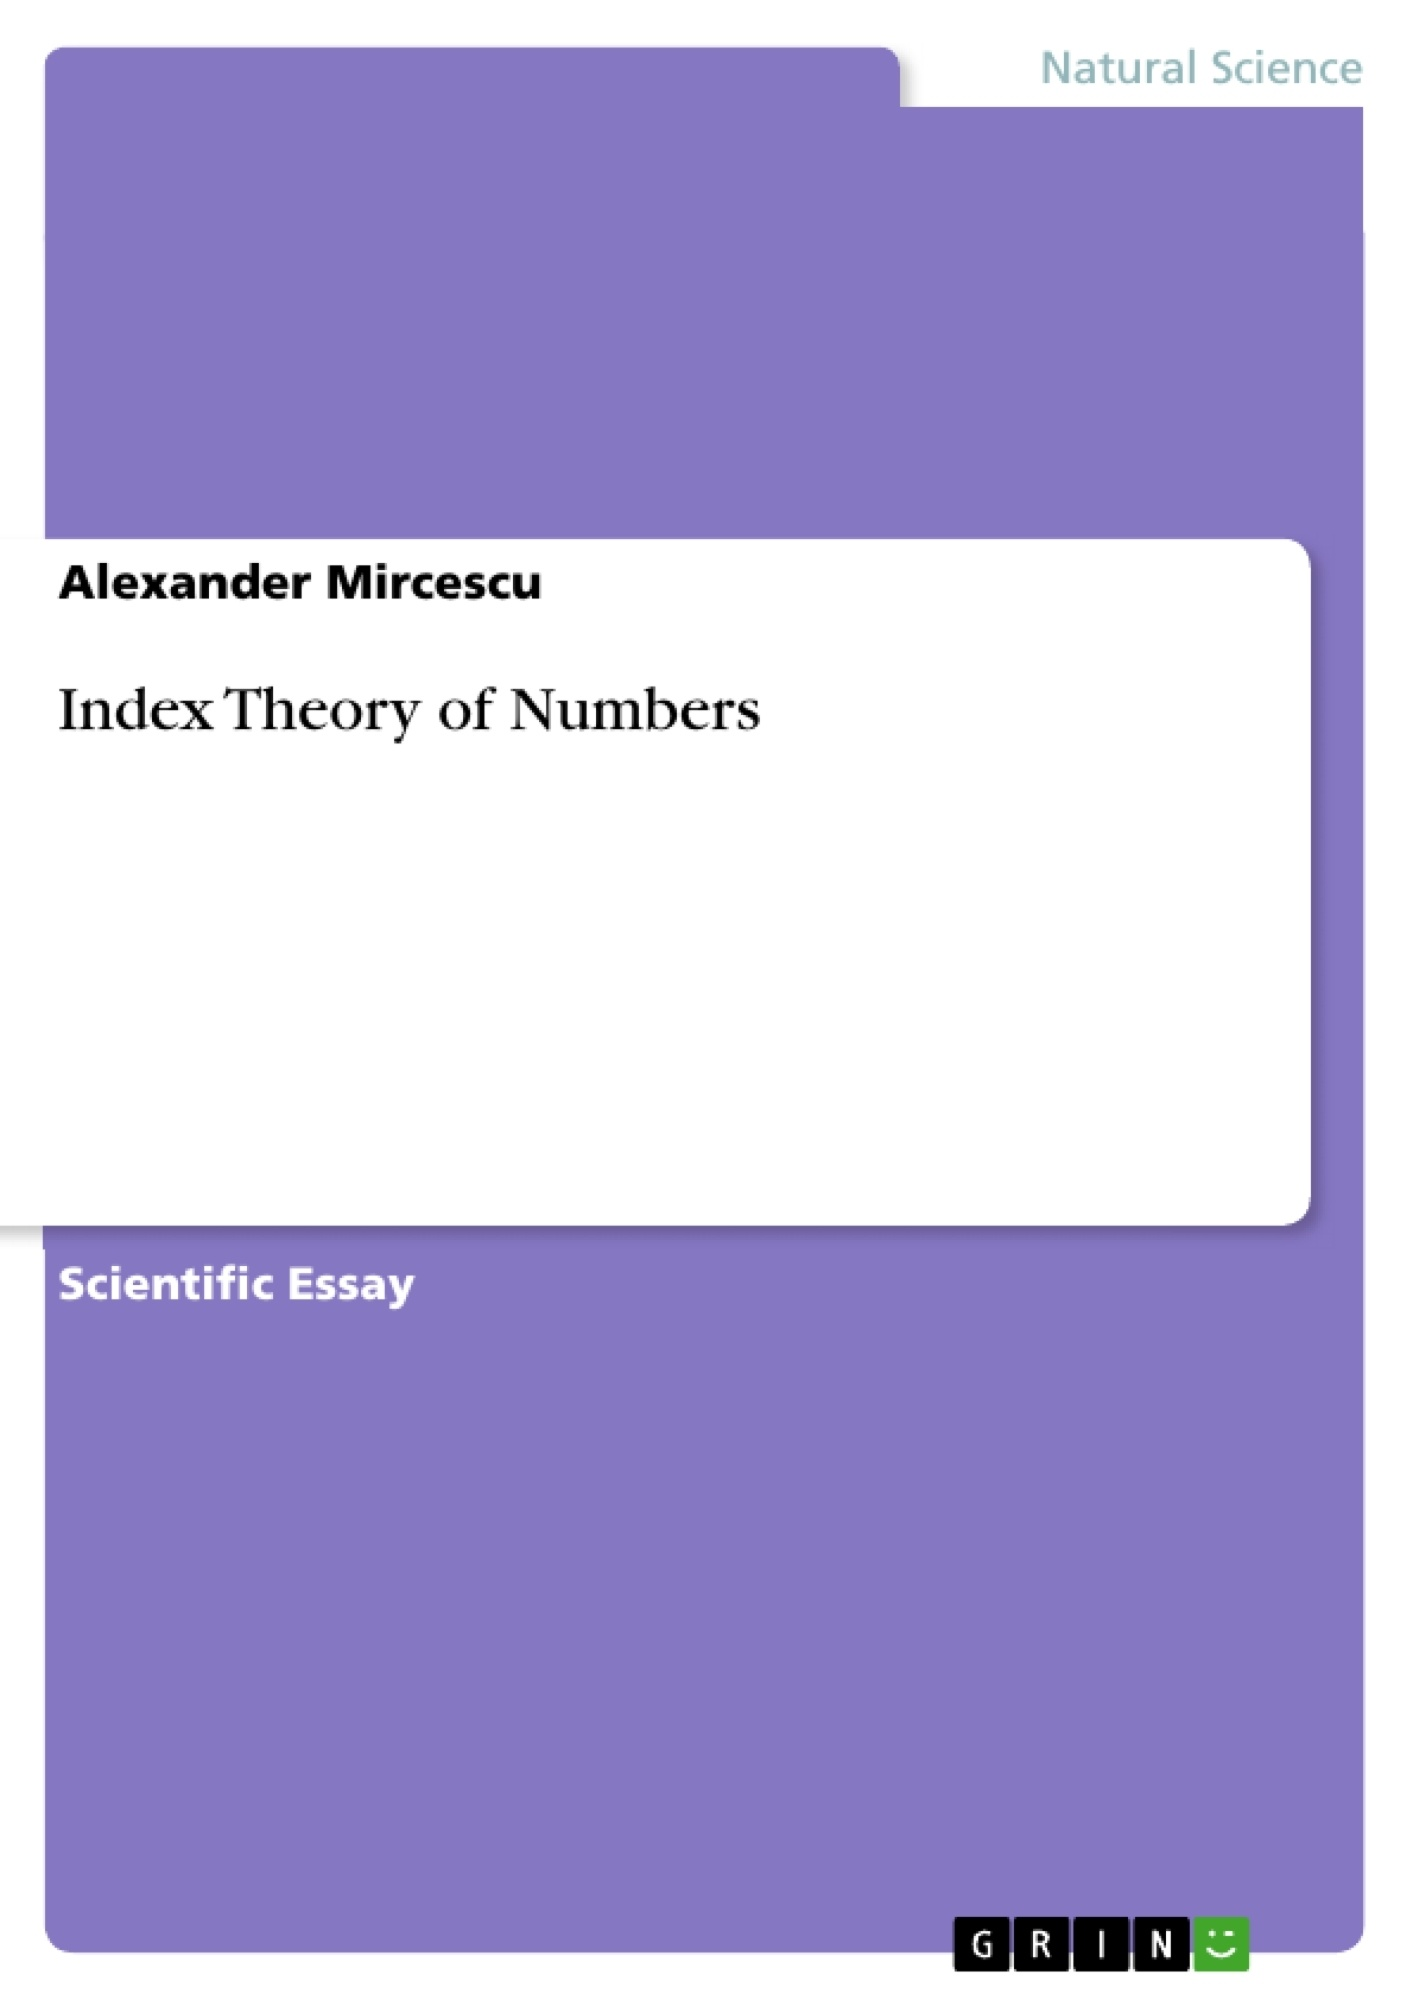 Title: Index Theory of Numbers